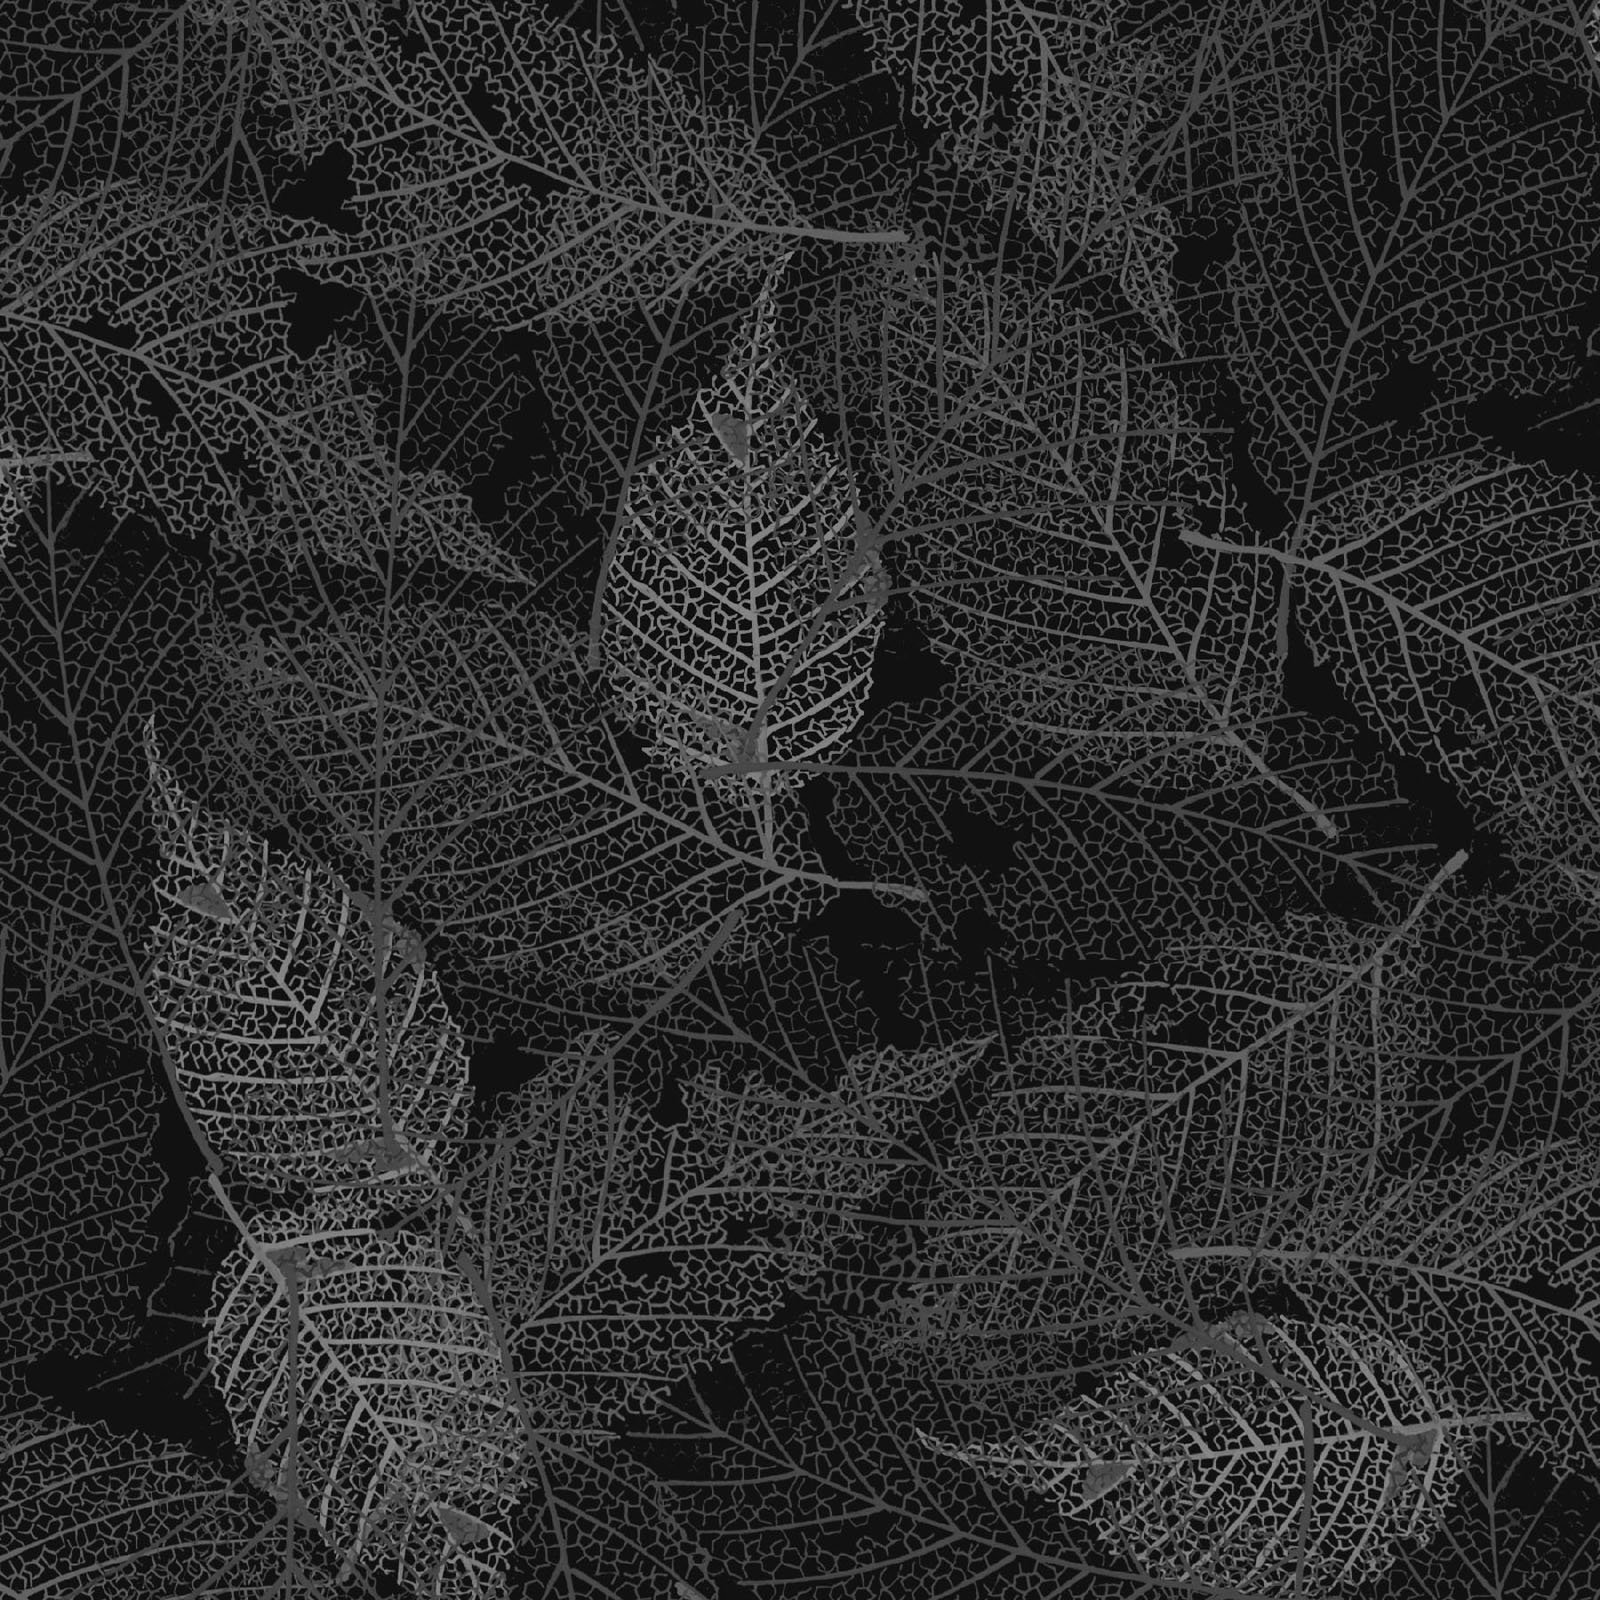 FOLI-4478 K - FOLIAGE BY P&B BOUTIQUE TEXTURE LEAVES BLACK - ARRIVING IN MAY 2021